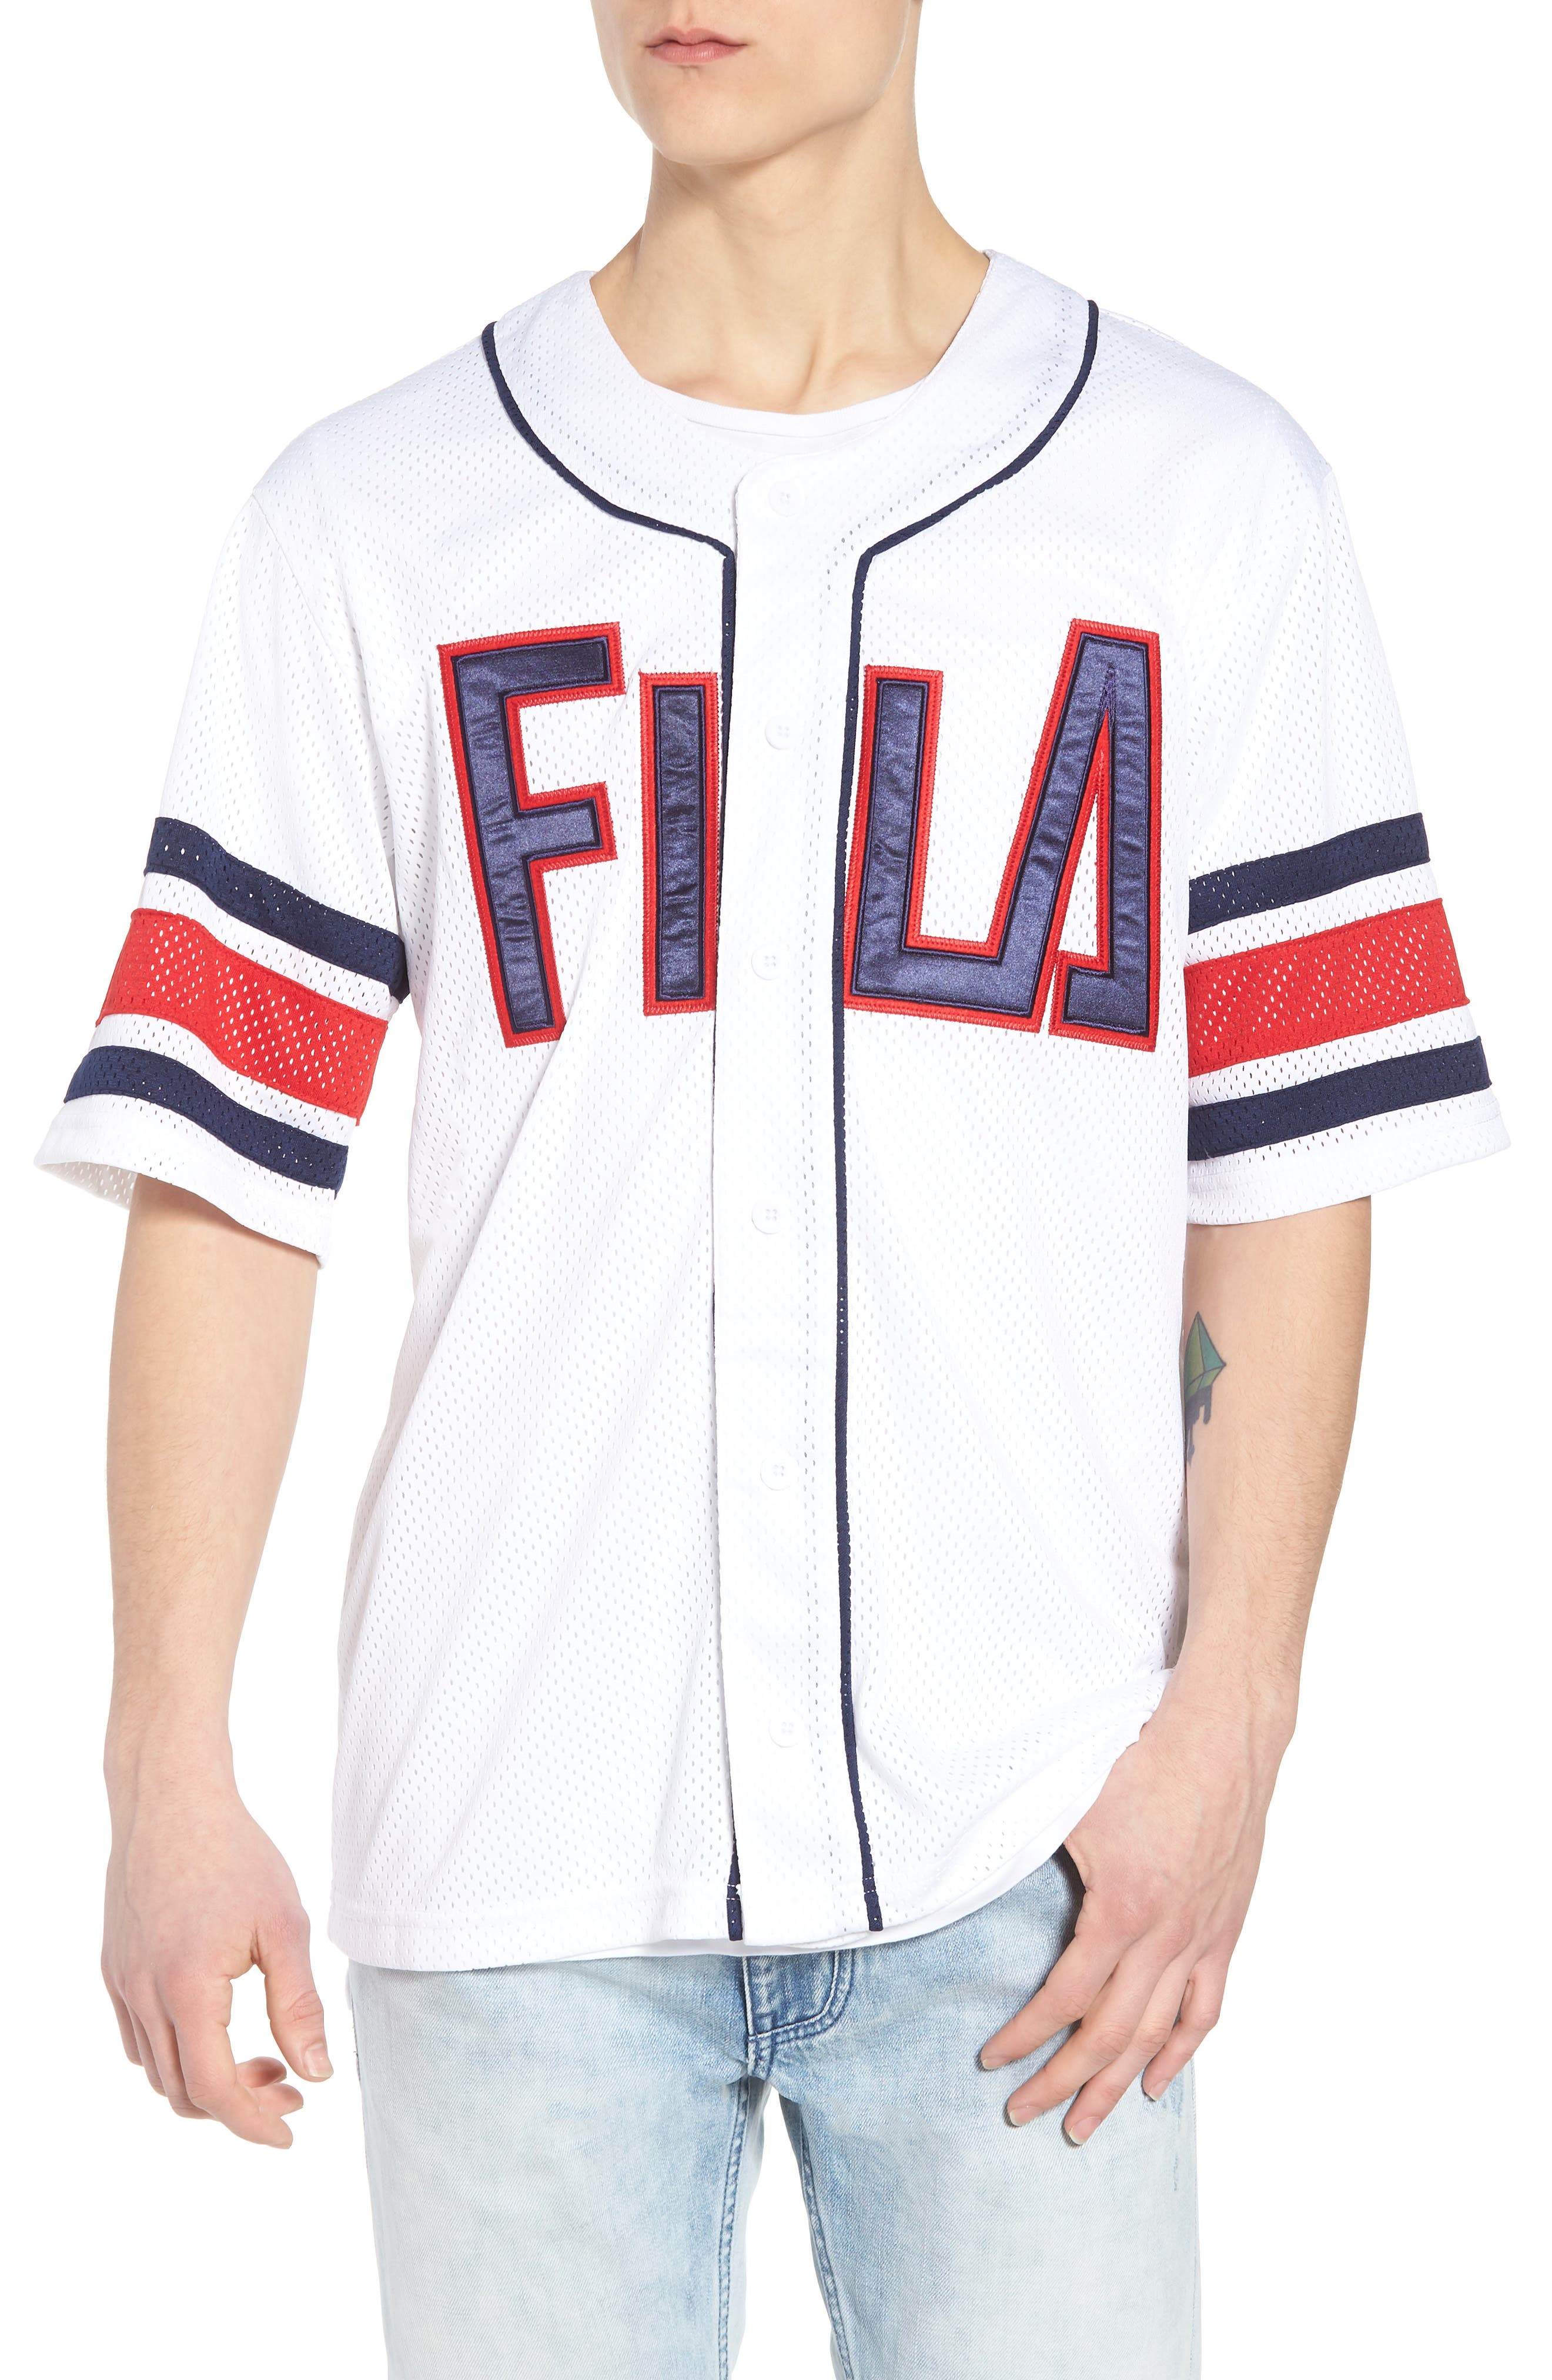 Kyler Baseball Jersey,                             Main thumbnail 1, color,                             White/ Peacoat/ Chinese Red